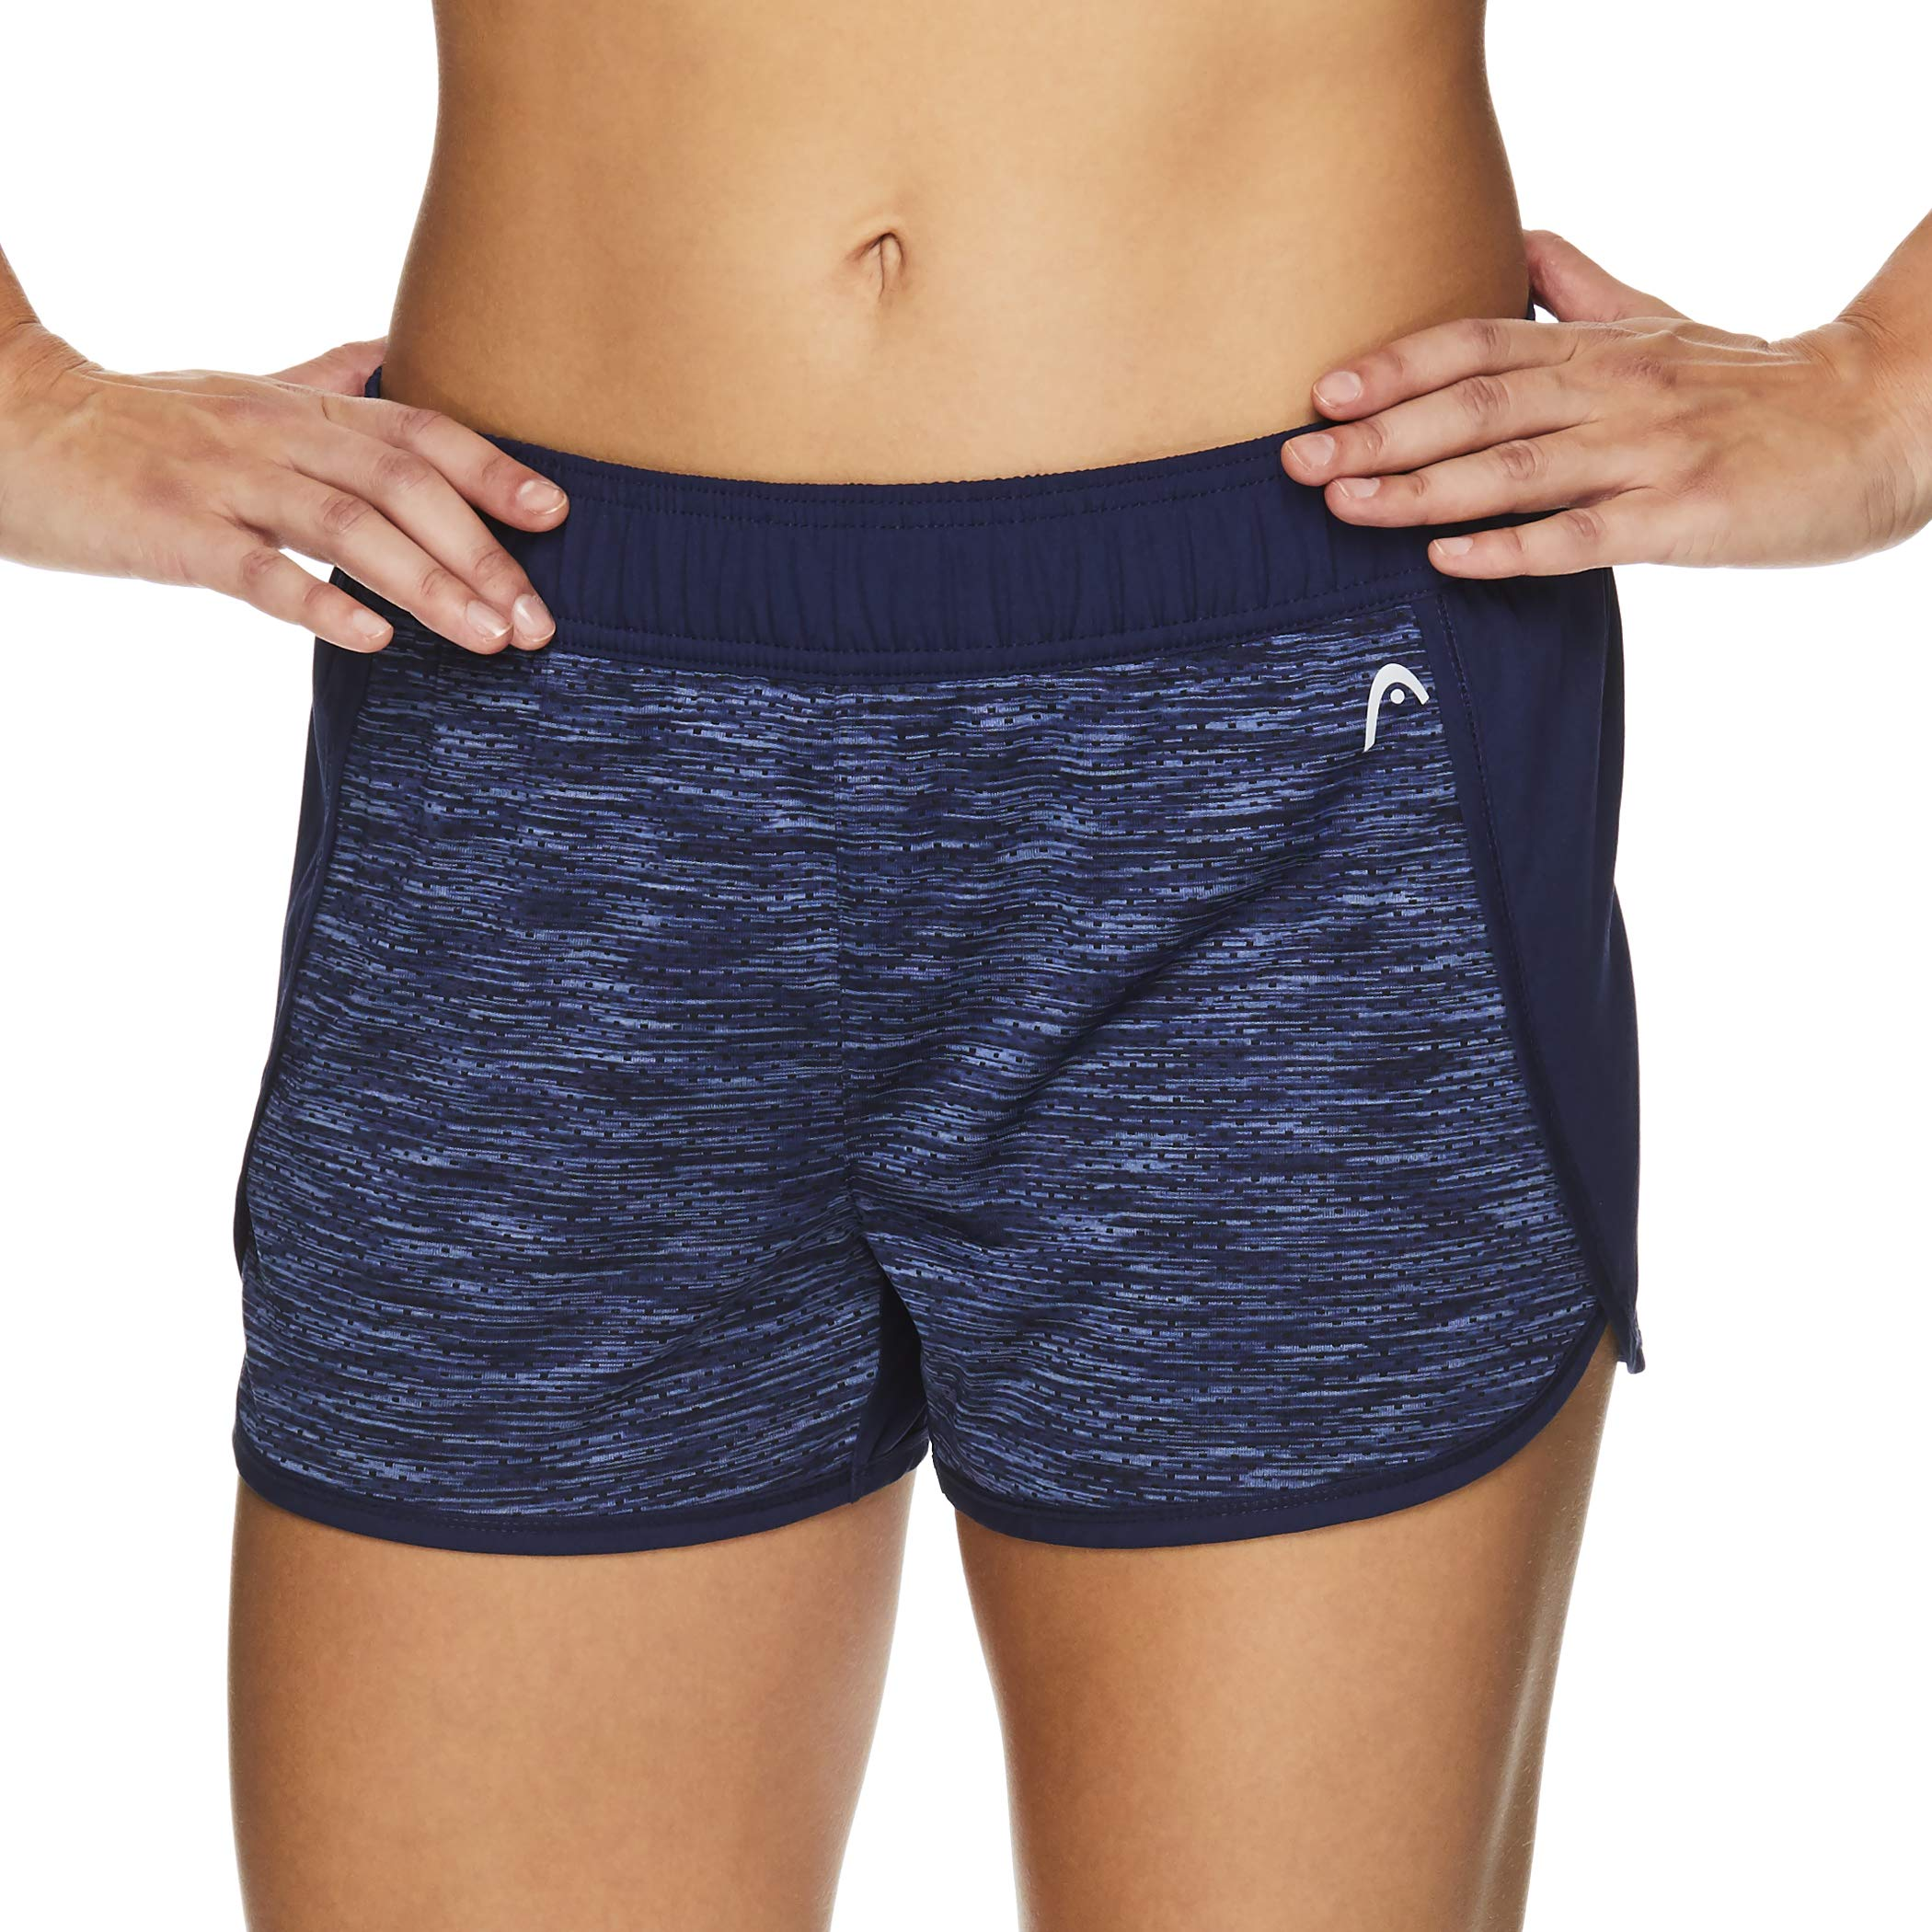 HEAD Women's Athletic Workout Shorts - Polyester Gym Training & Running Short - Inside Track Medieval Blue, X-Small